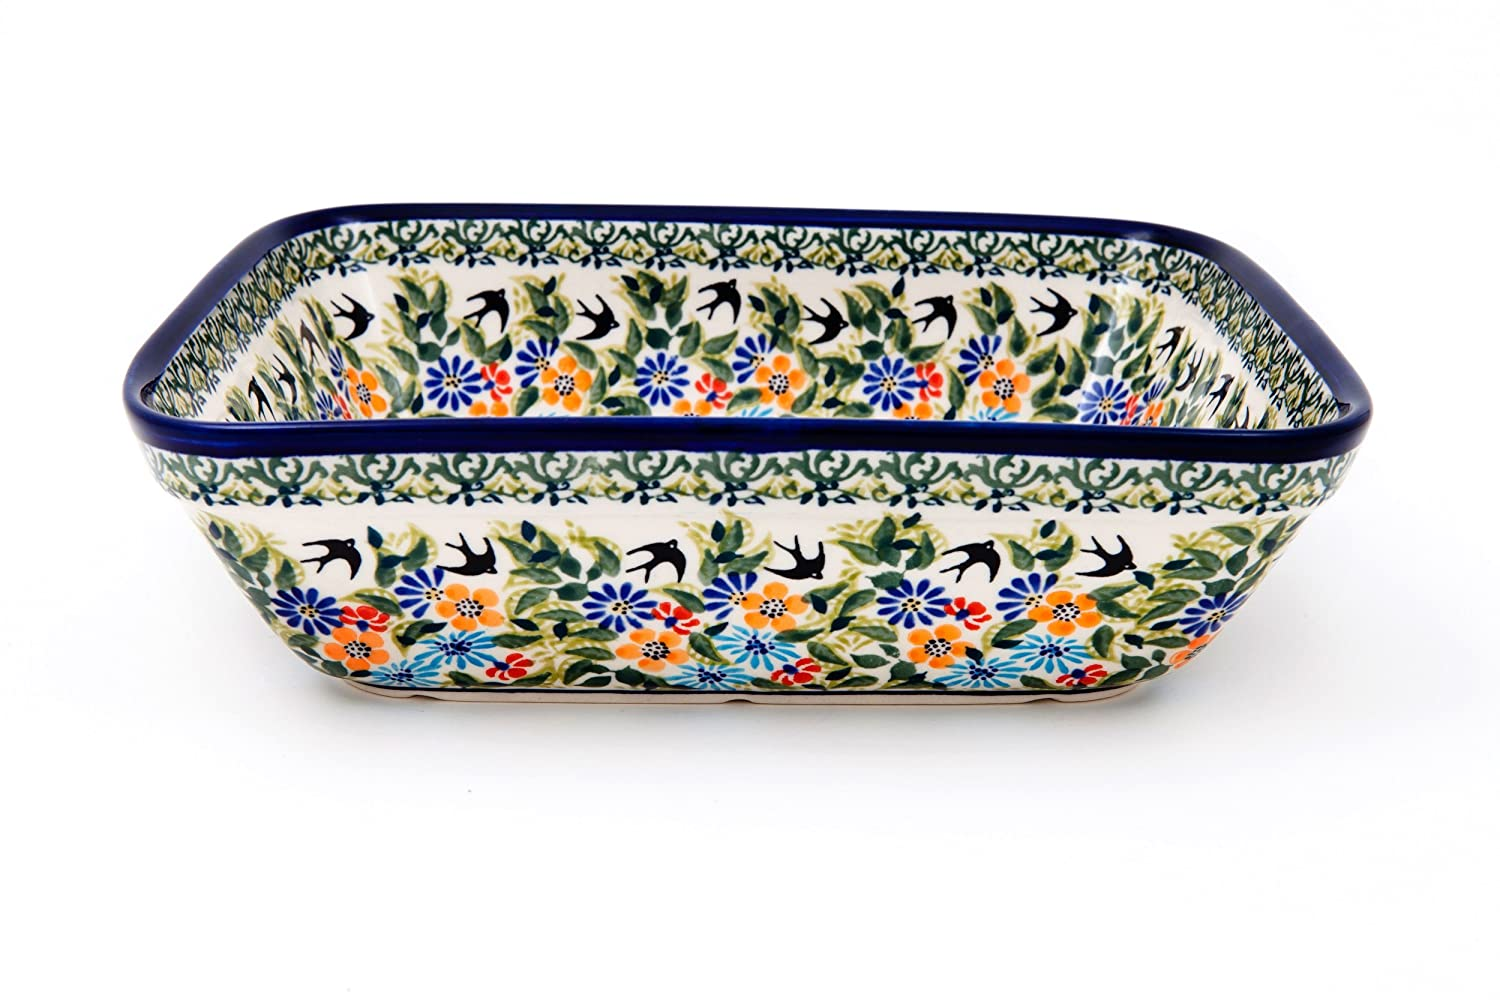 Hand-Decorated Polish Pottery Casserole Dish for 3 People with High Edge 1.5 Litres in Premium DU182 Bunzlauer Keramik